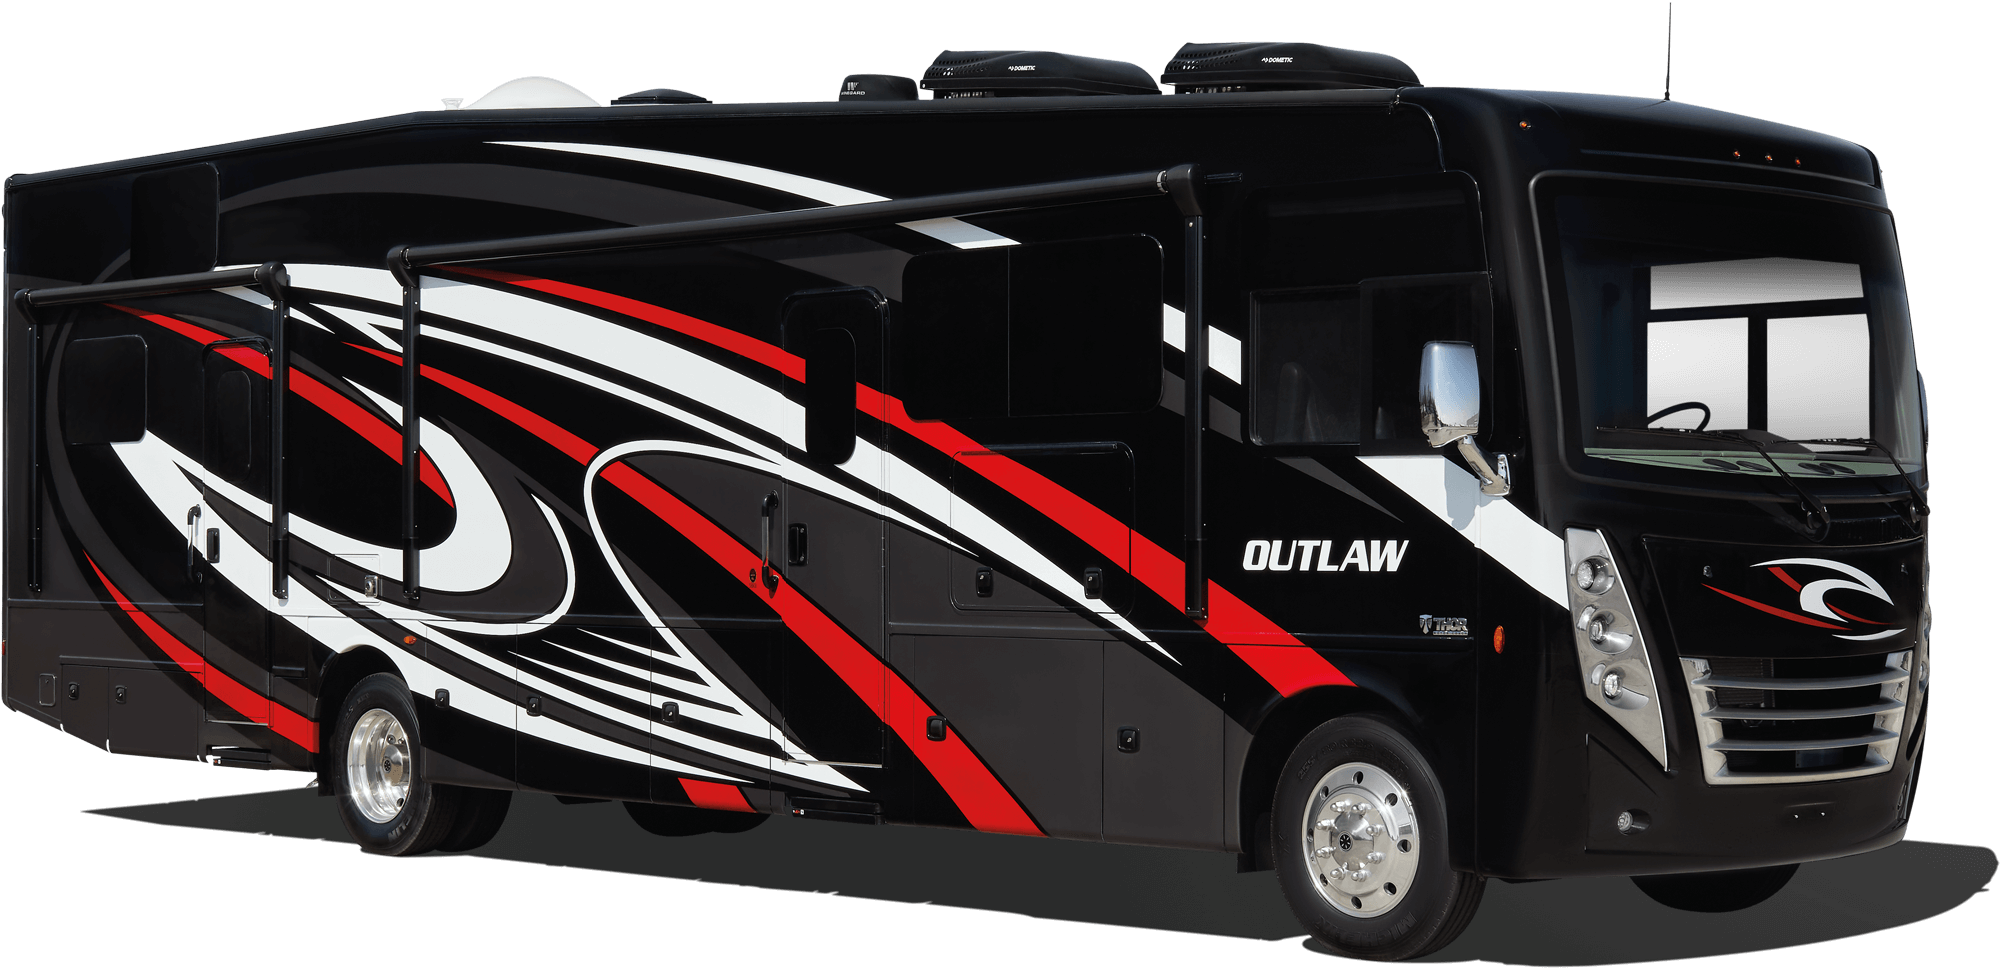 Best Toy Hauler 2021 Outlaw Class A Toy Hauler Motorhomes | Thor Motor Coach